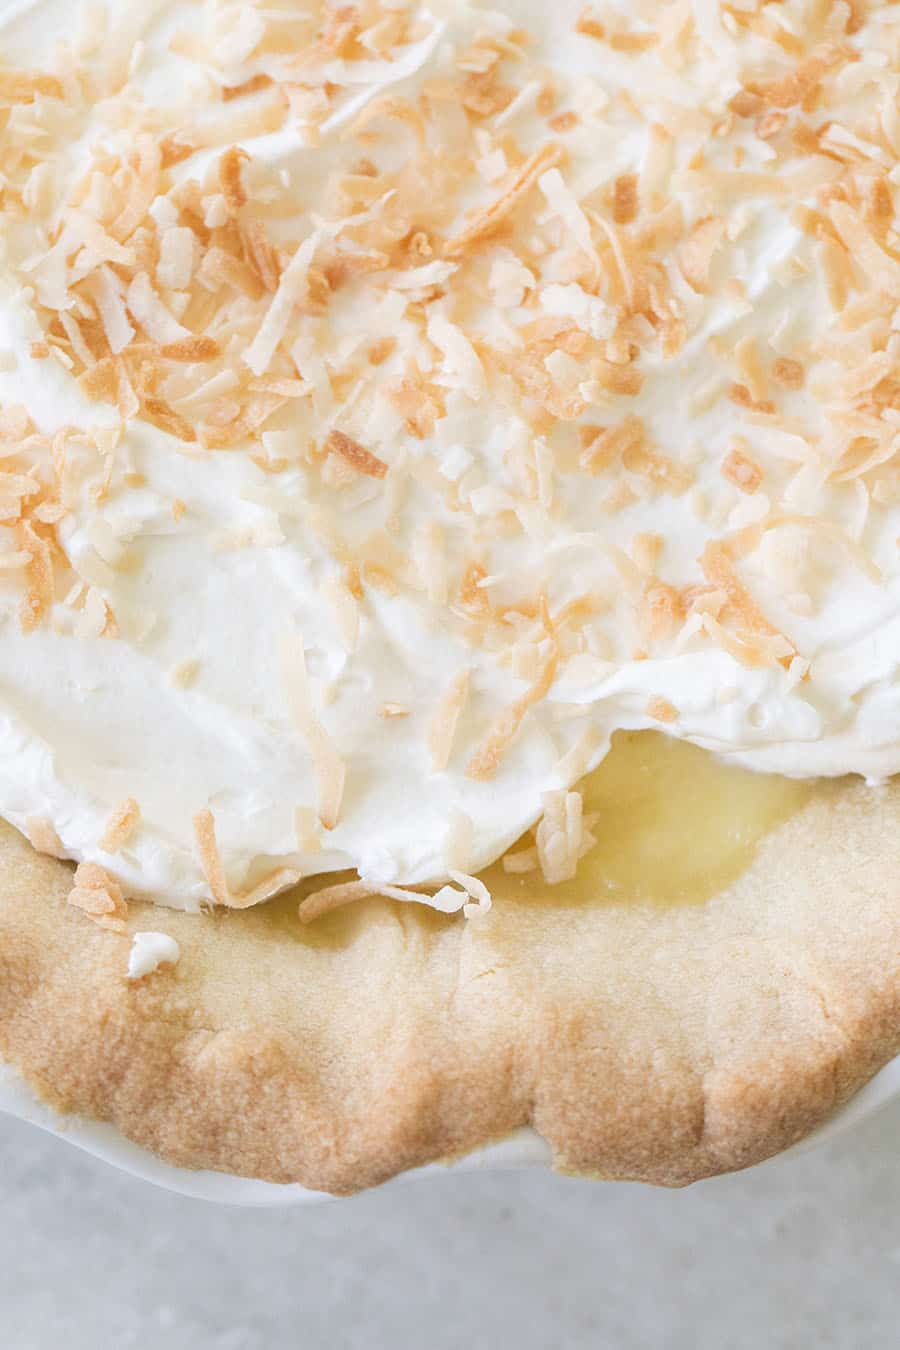 Close up photo of whipped cream, toasted coconut on a coconut cream pie.